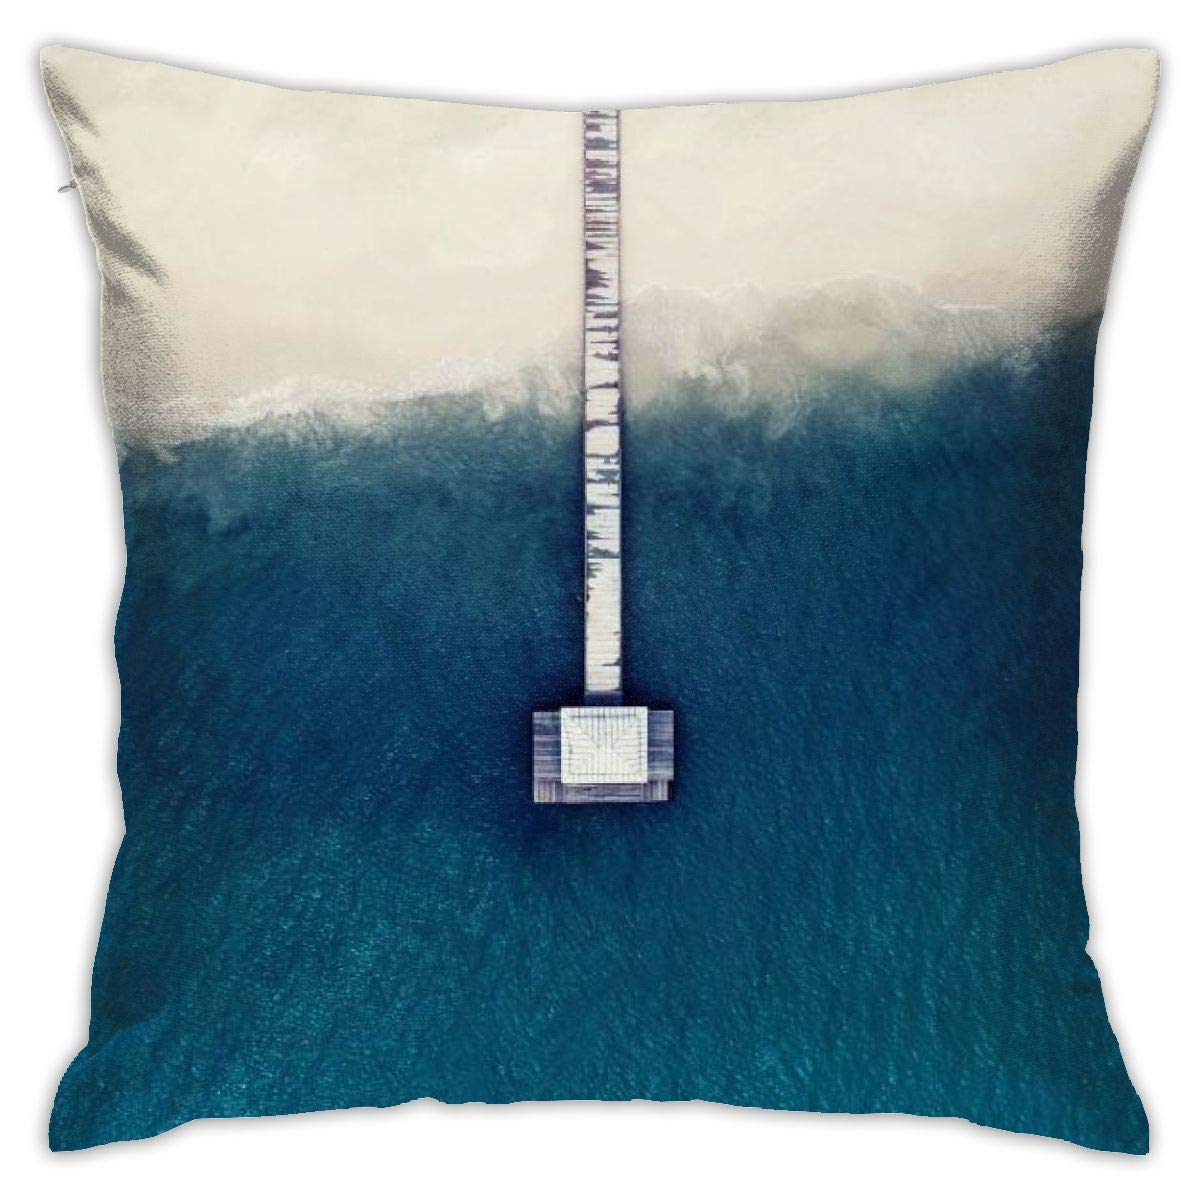 DAVV0 Throw Pillow Case, Bridge Sea Beach Pillowcase 18x18, Square Throw Covers, Decorative Cushion for Sofa Couch Car